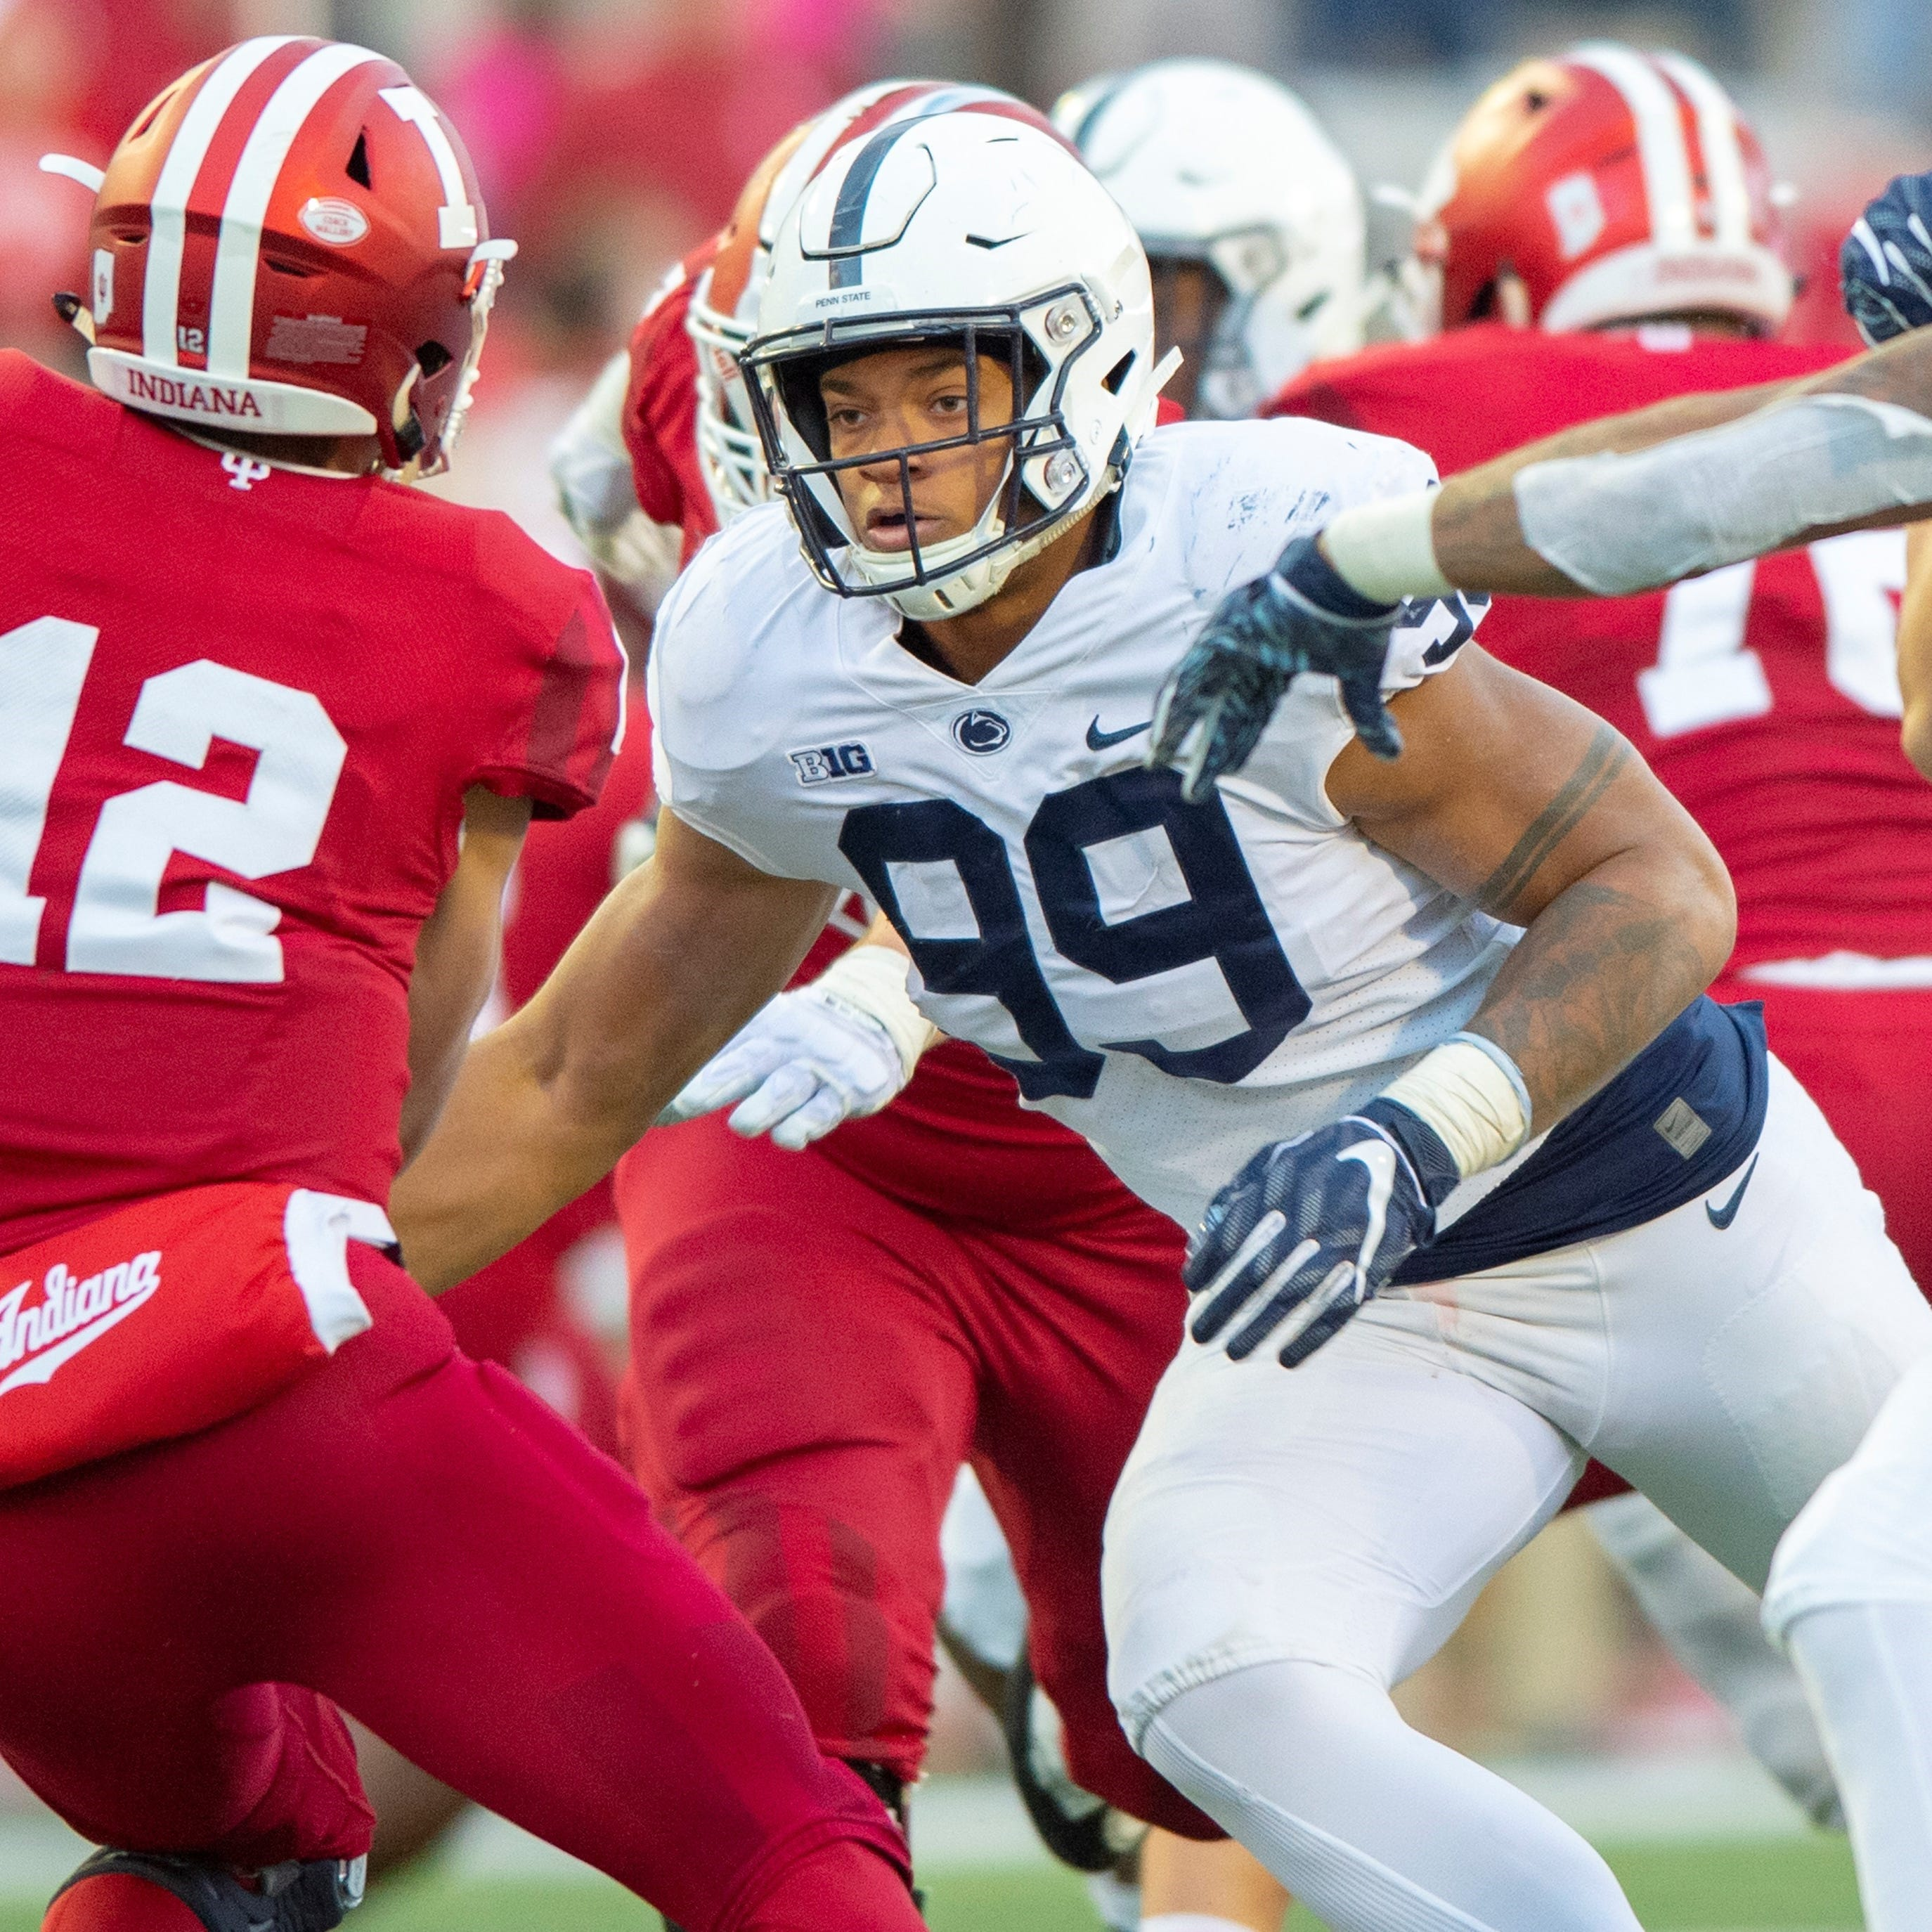 COLLINS: Penn State got desperately needed football victory, but should've wanted more